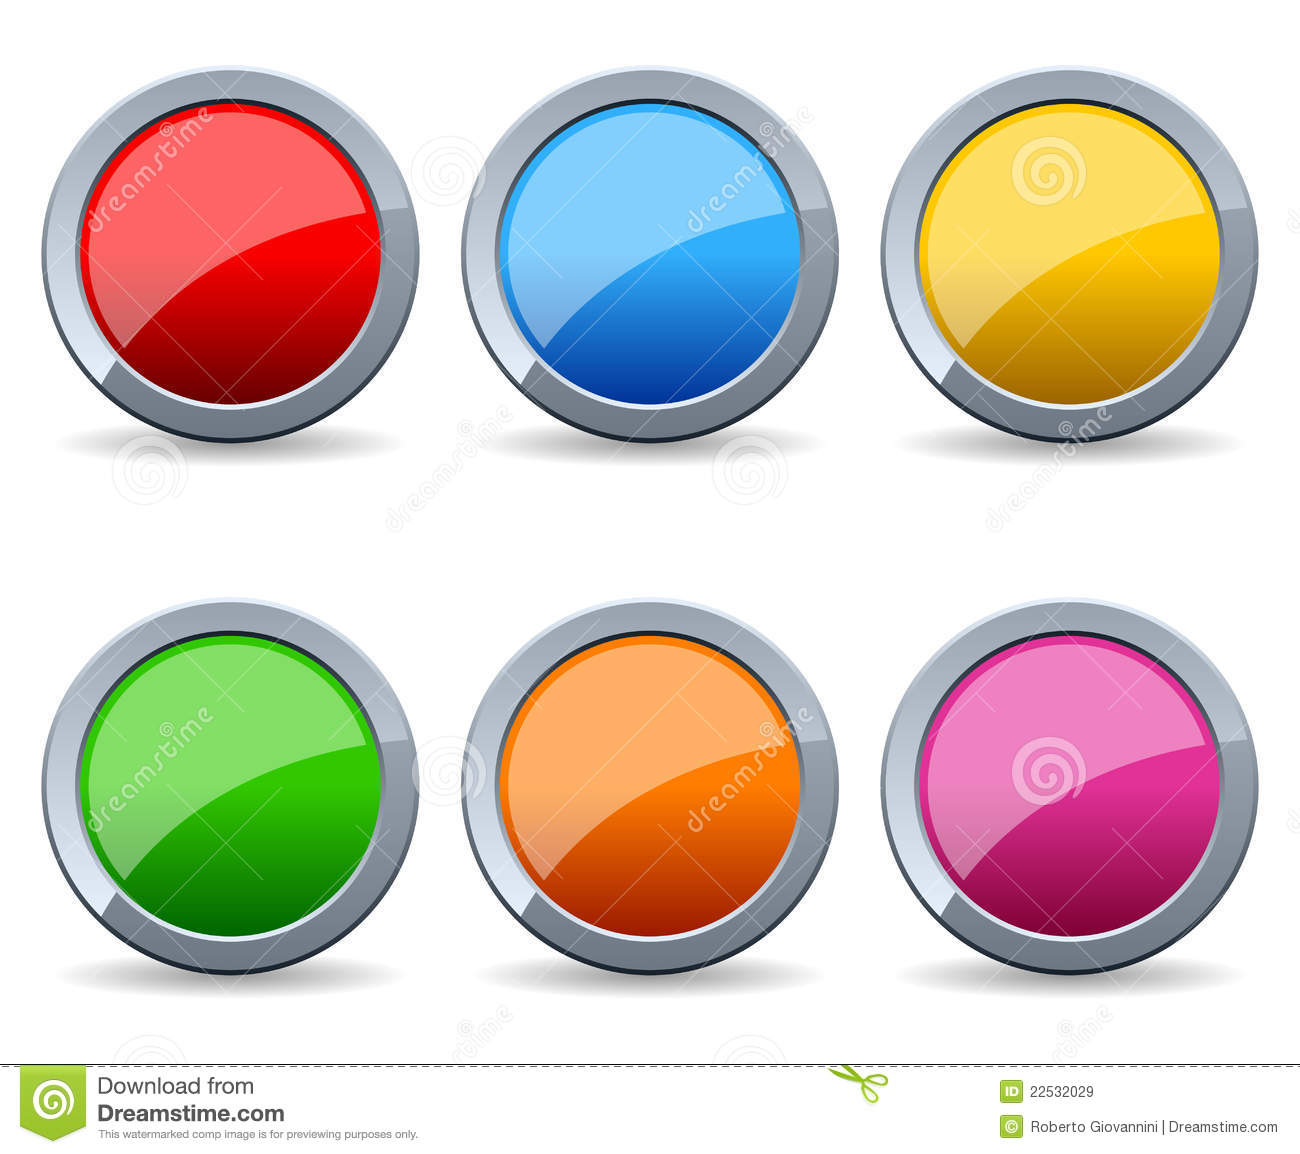 Glossy Round Metal Buttons Set Royalty Free Stock Images.